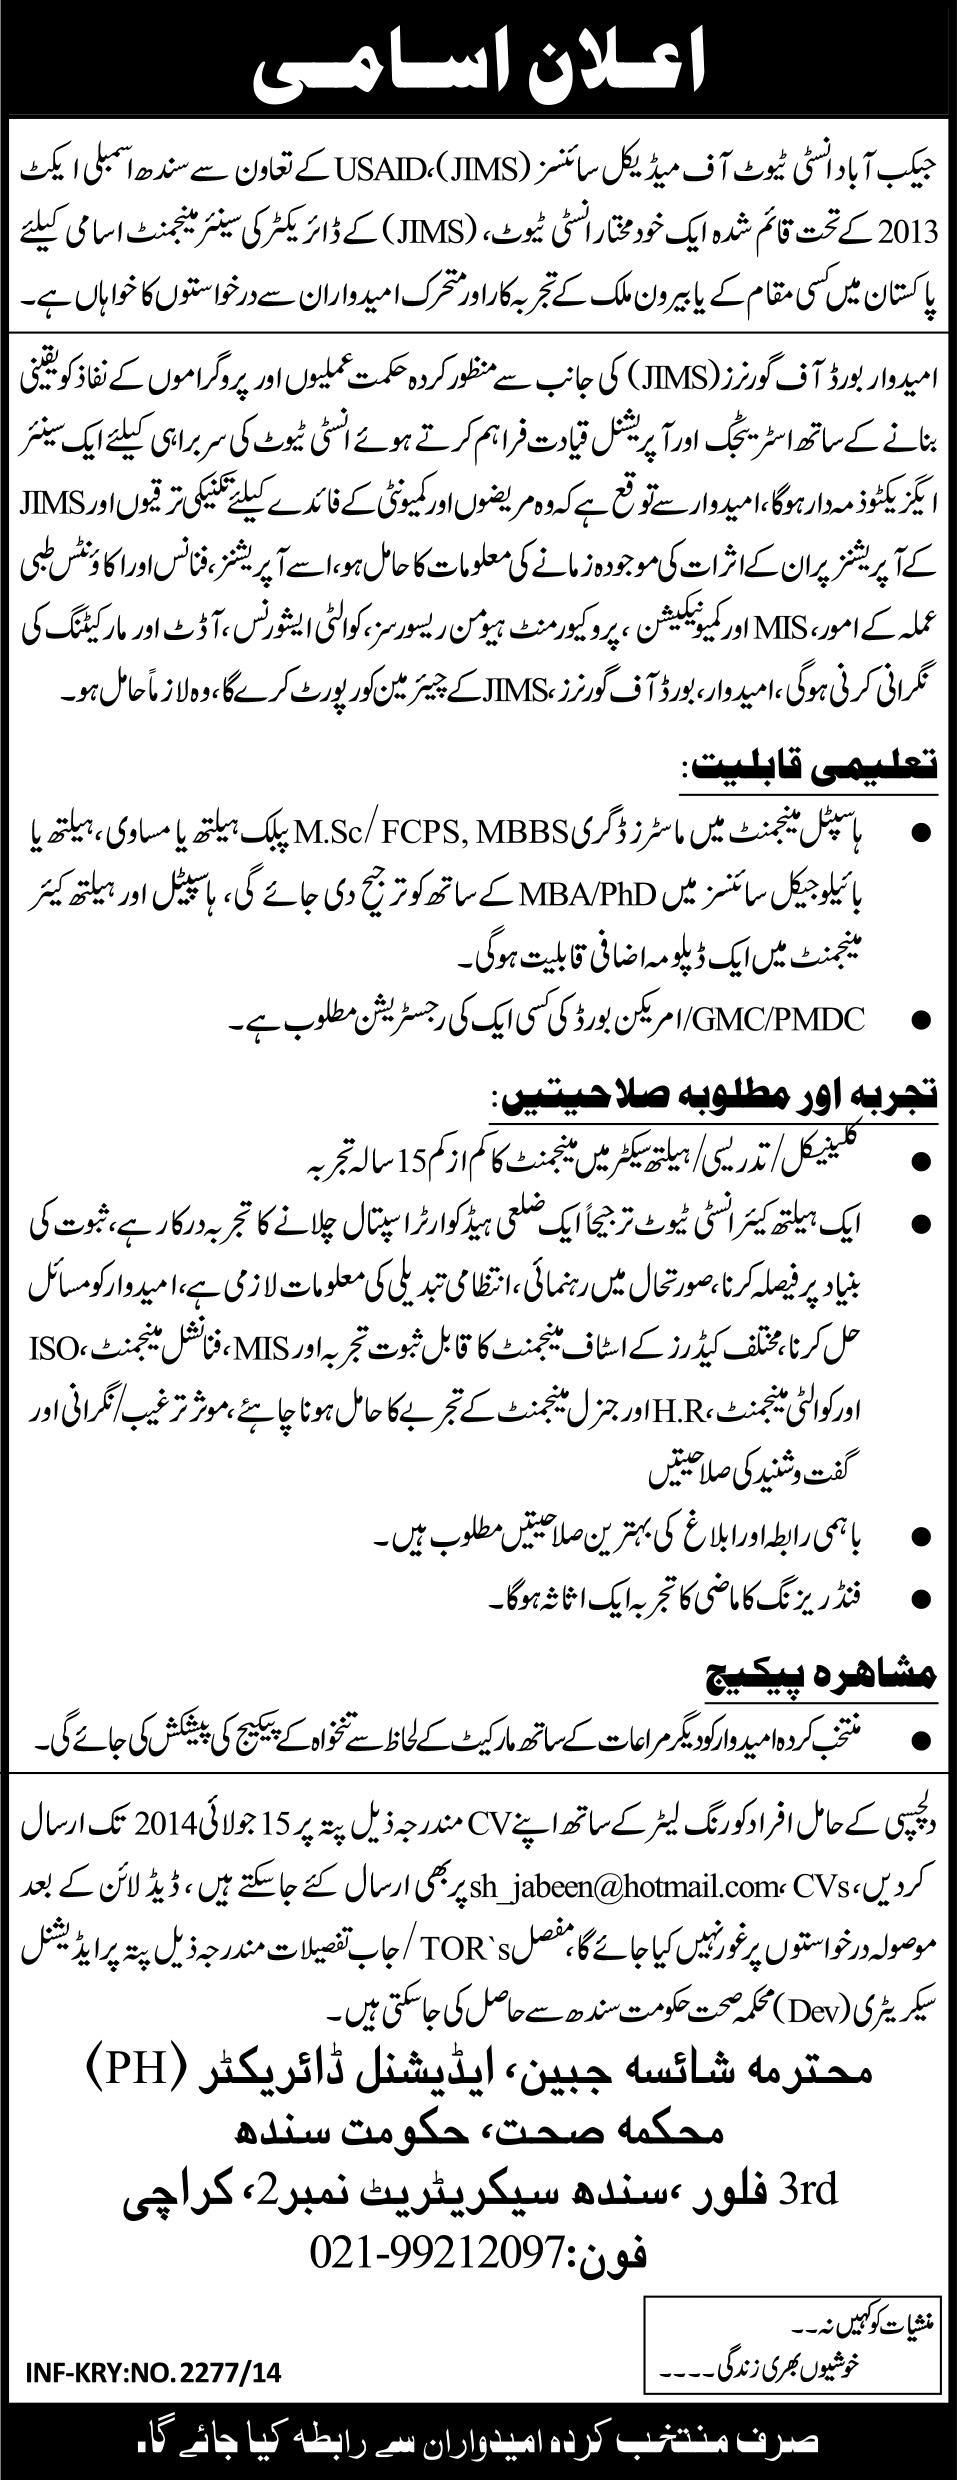 Senior Managing Director Jobs in Jacobabad Institute of Medical Sciences (JIMS)